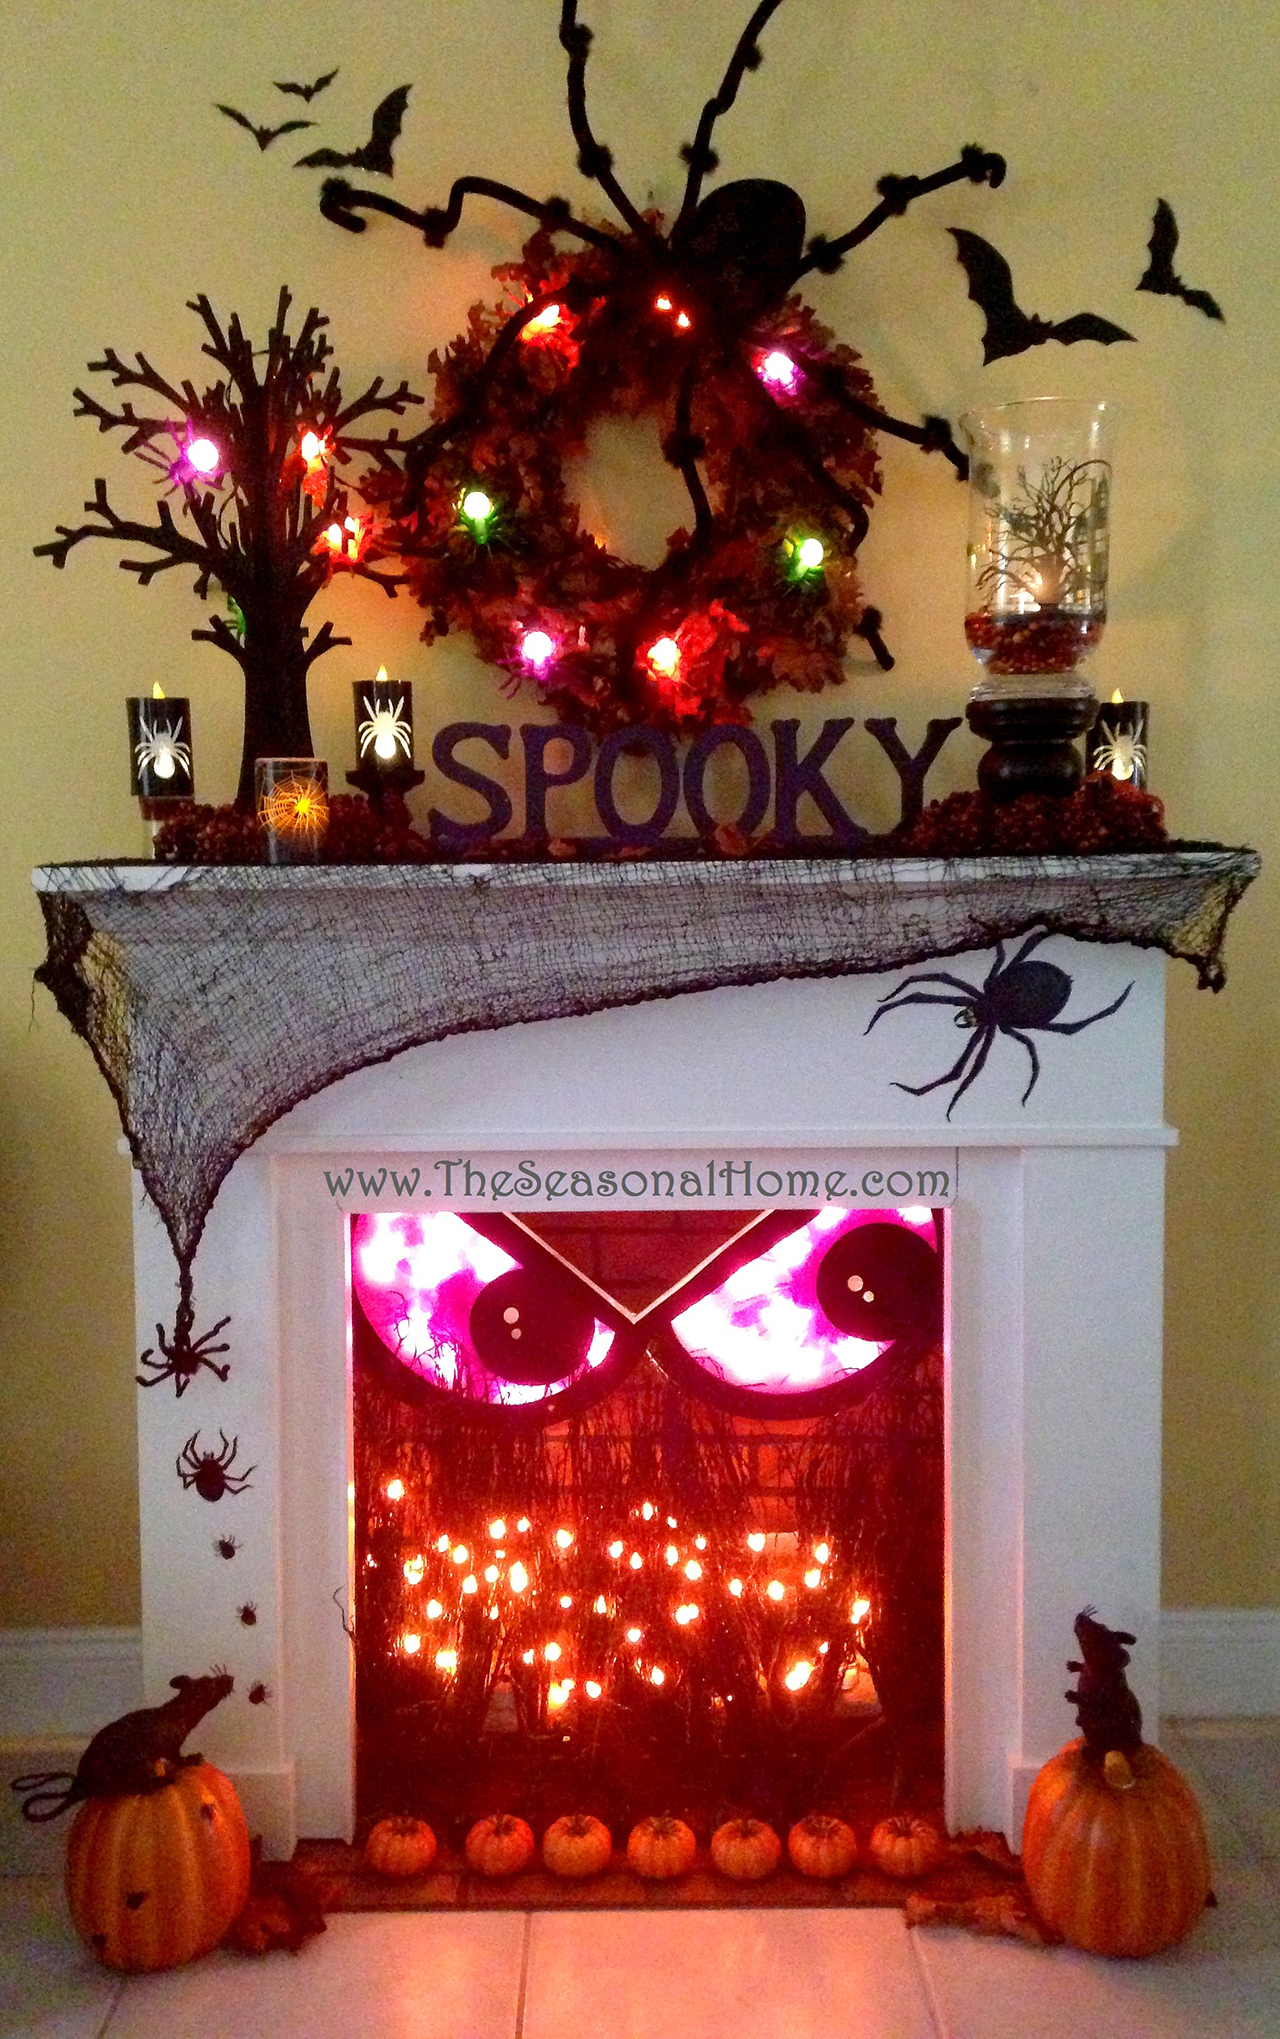 Spooky Fireplace Crackles with Fun